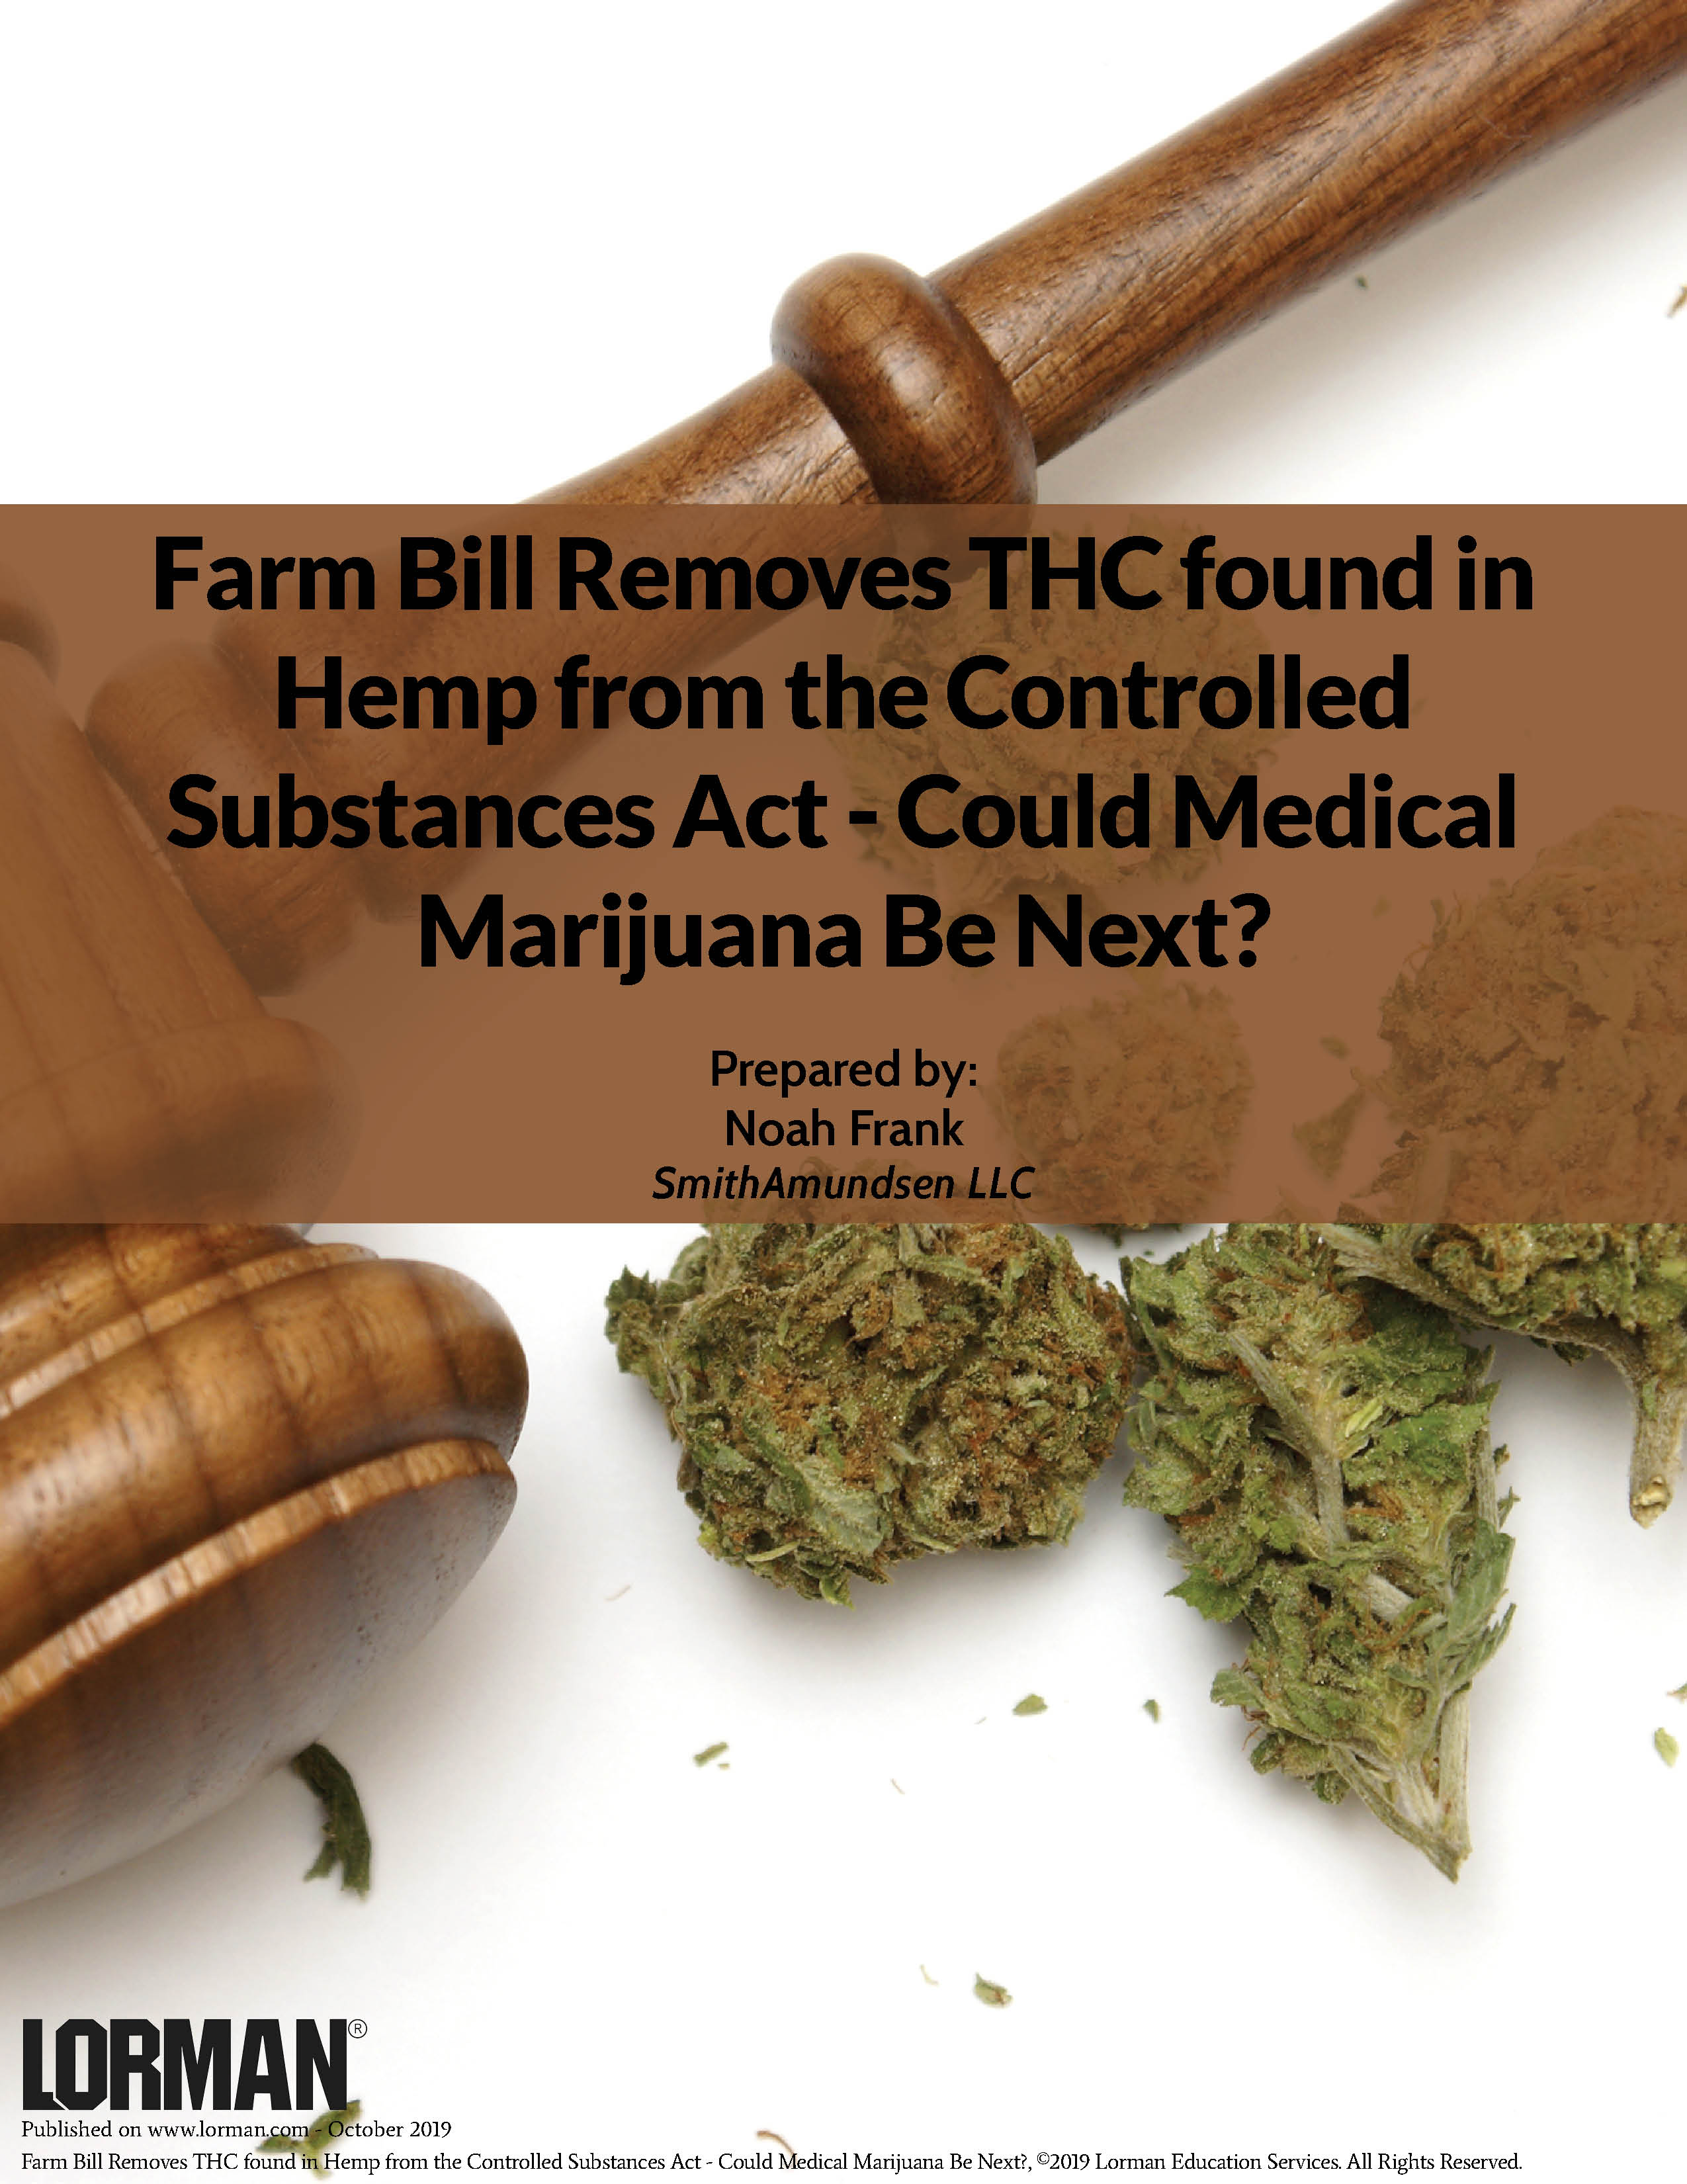 Farm Bill Removes THC found in Hemp from the Controlled Substances Act